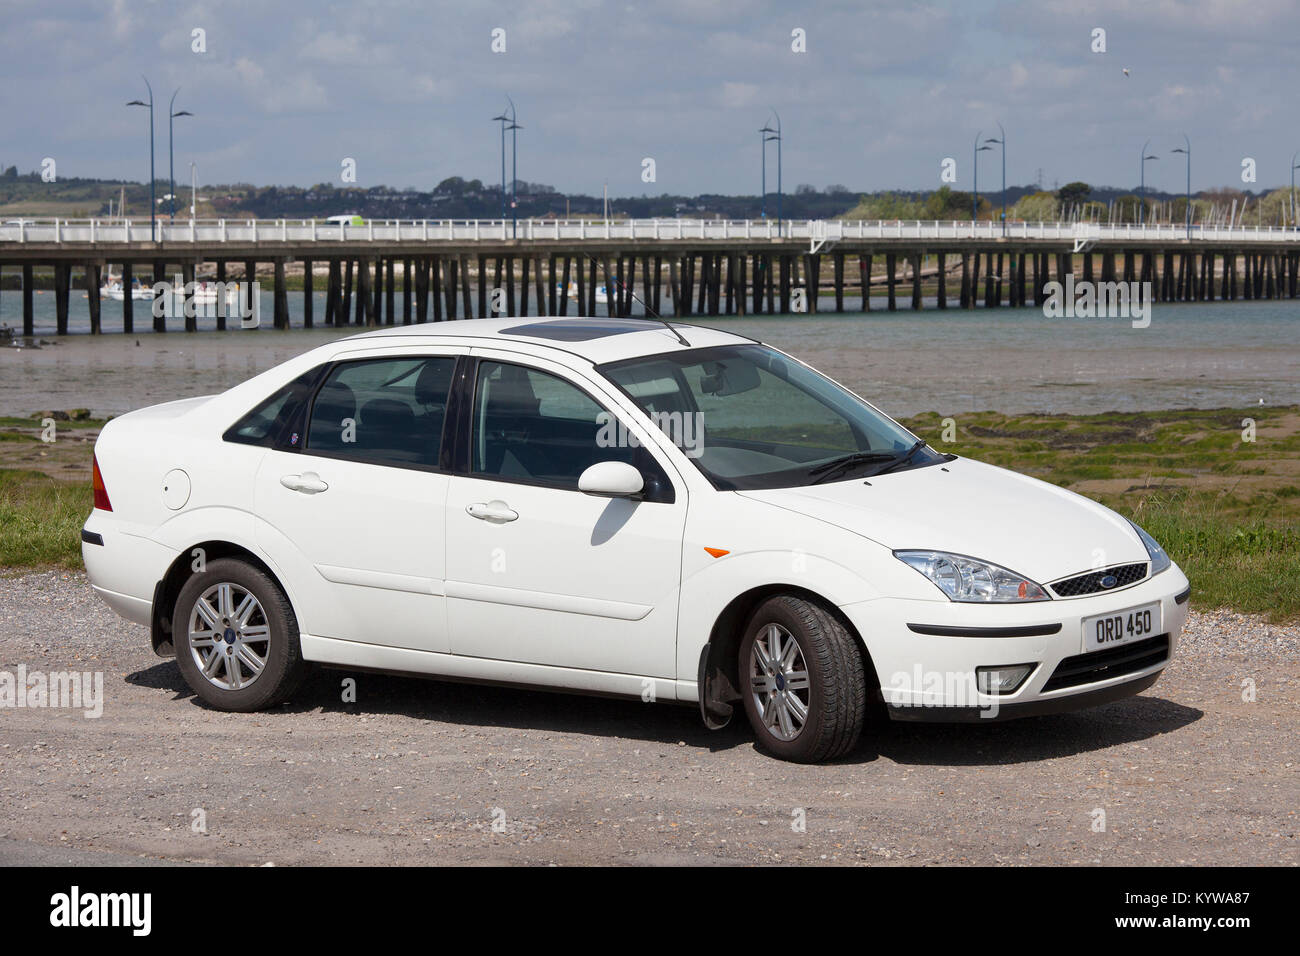 A white 2004 Ford Focus 1.6 Ghia saloon, parked with Hayling Island bridge in the background - Stock Image